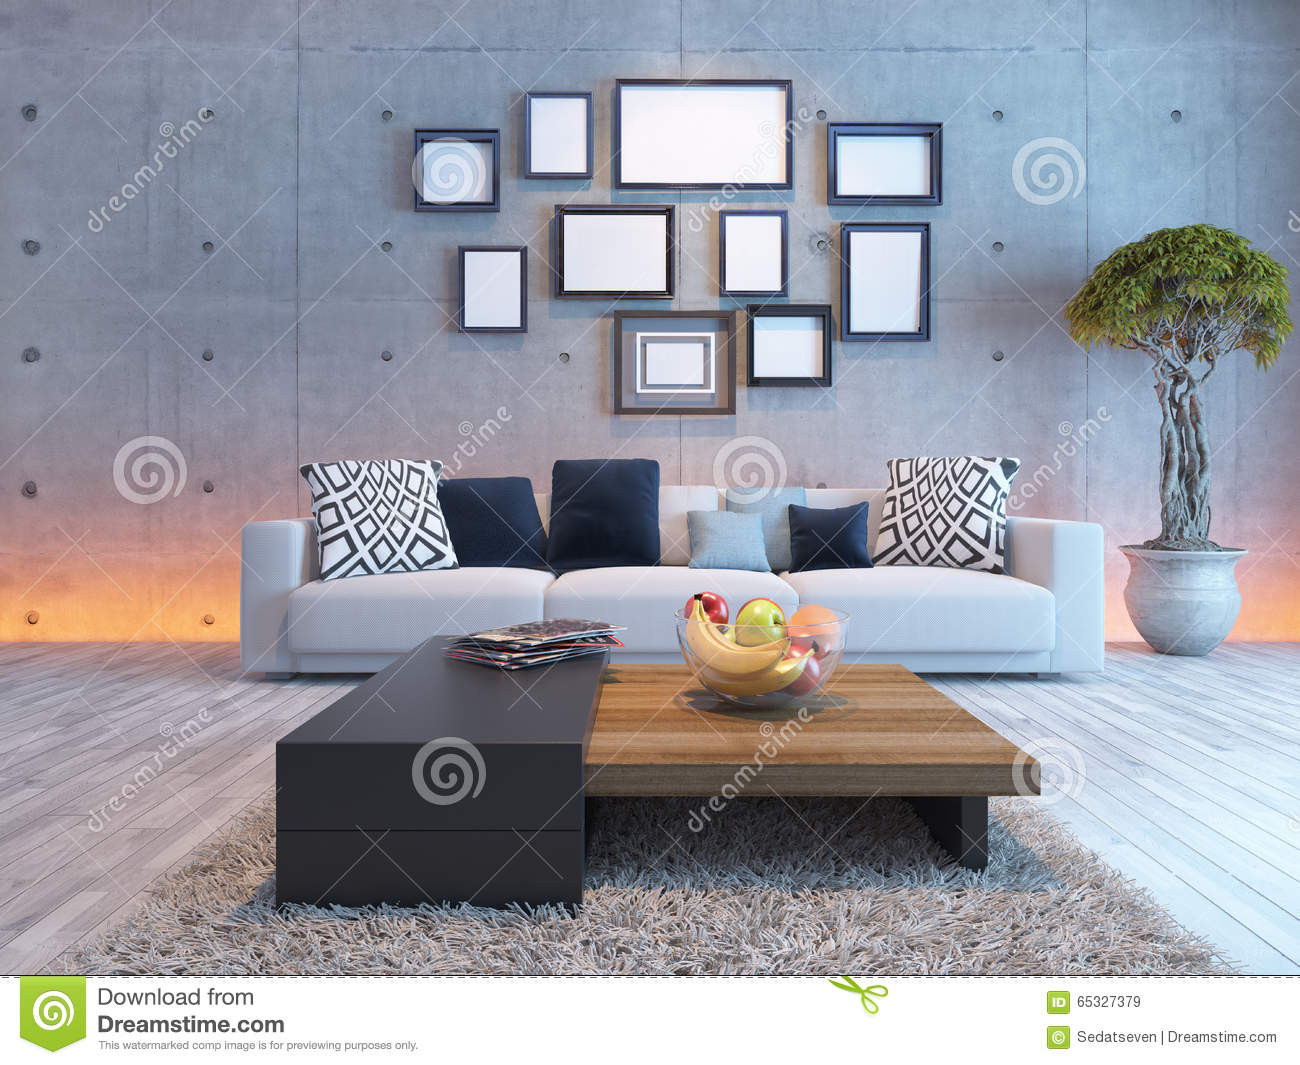 living room interior design with concrete wall and picture frame